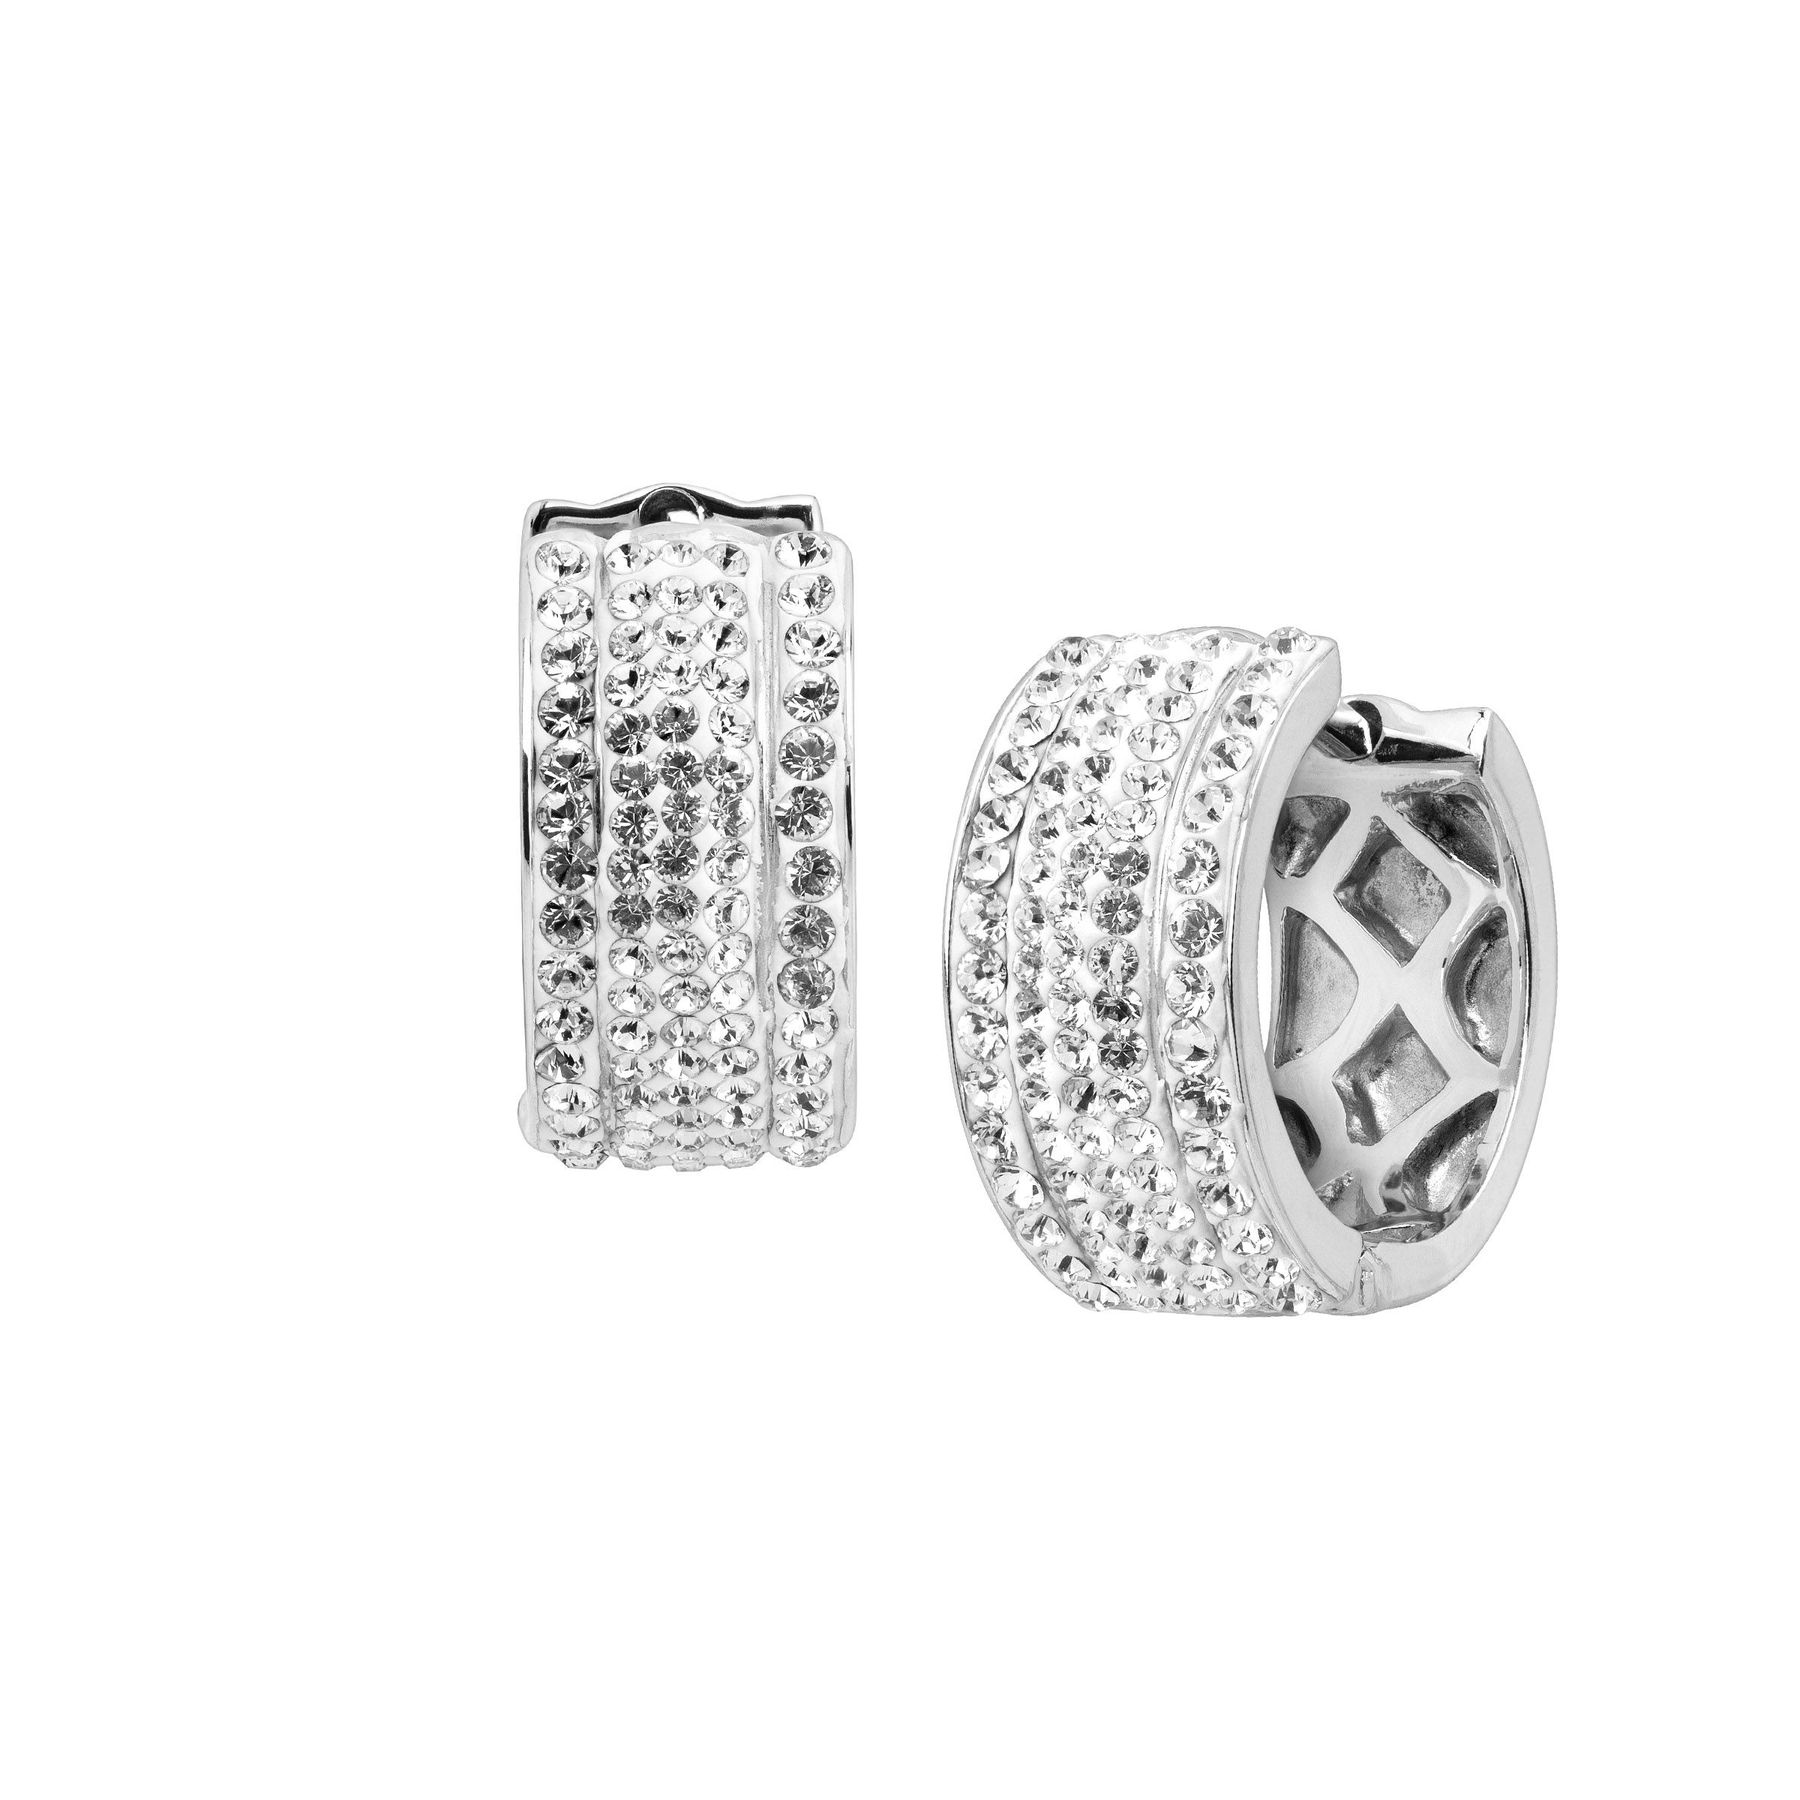 Crystaluxe Huggie Hoop Earrings With